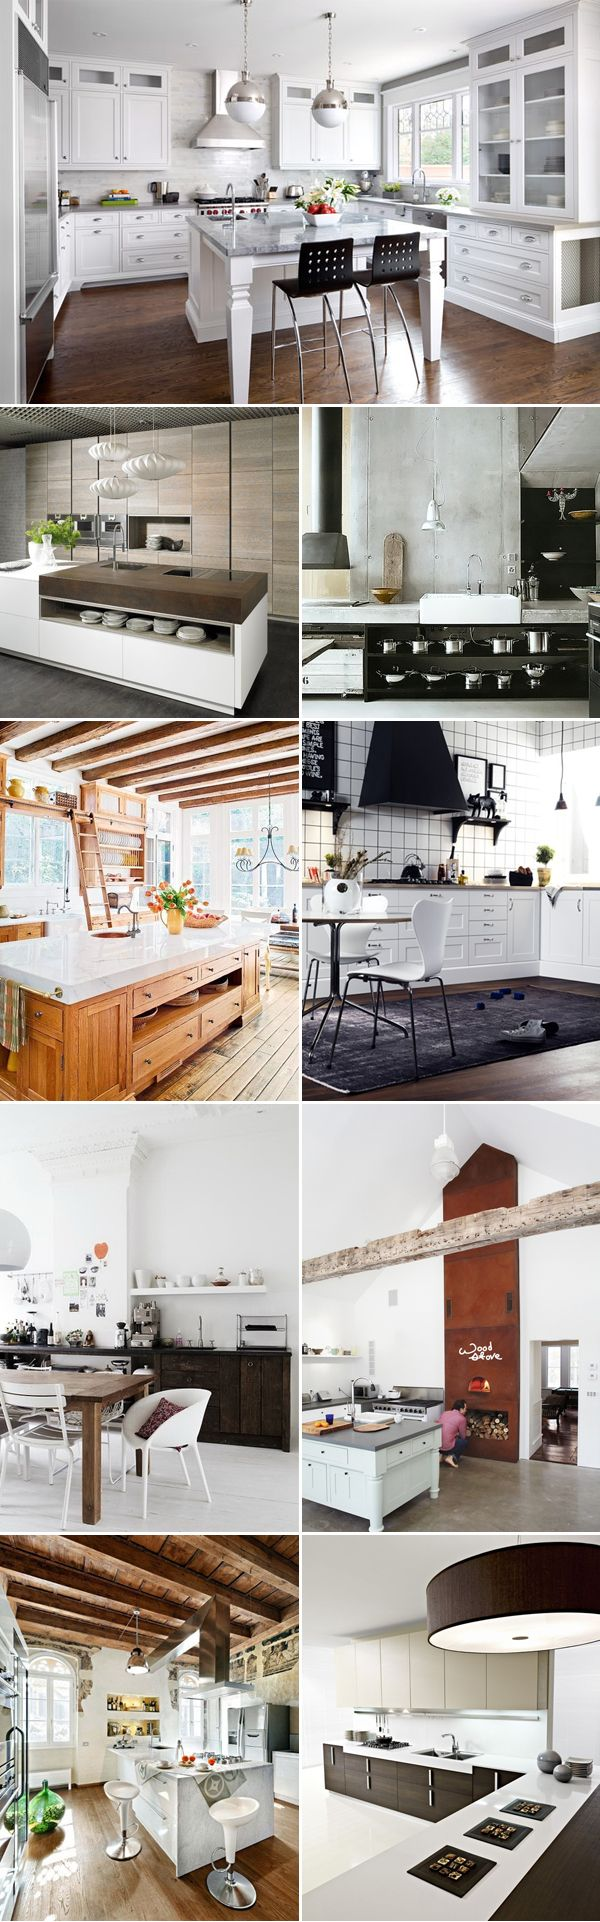 To satisfy your love for #modern #kitchen design. 25 Lovely Kitchen Designs - Modern Kitchens